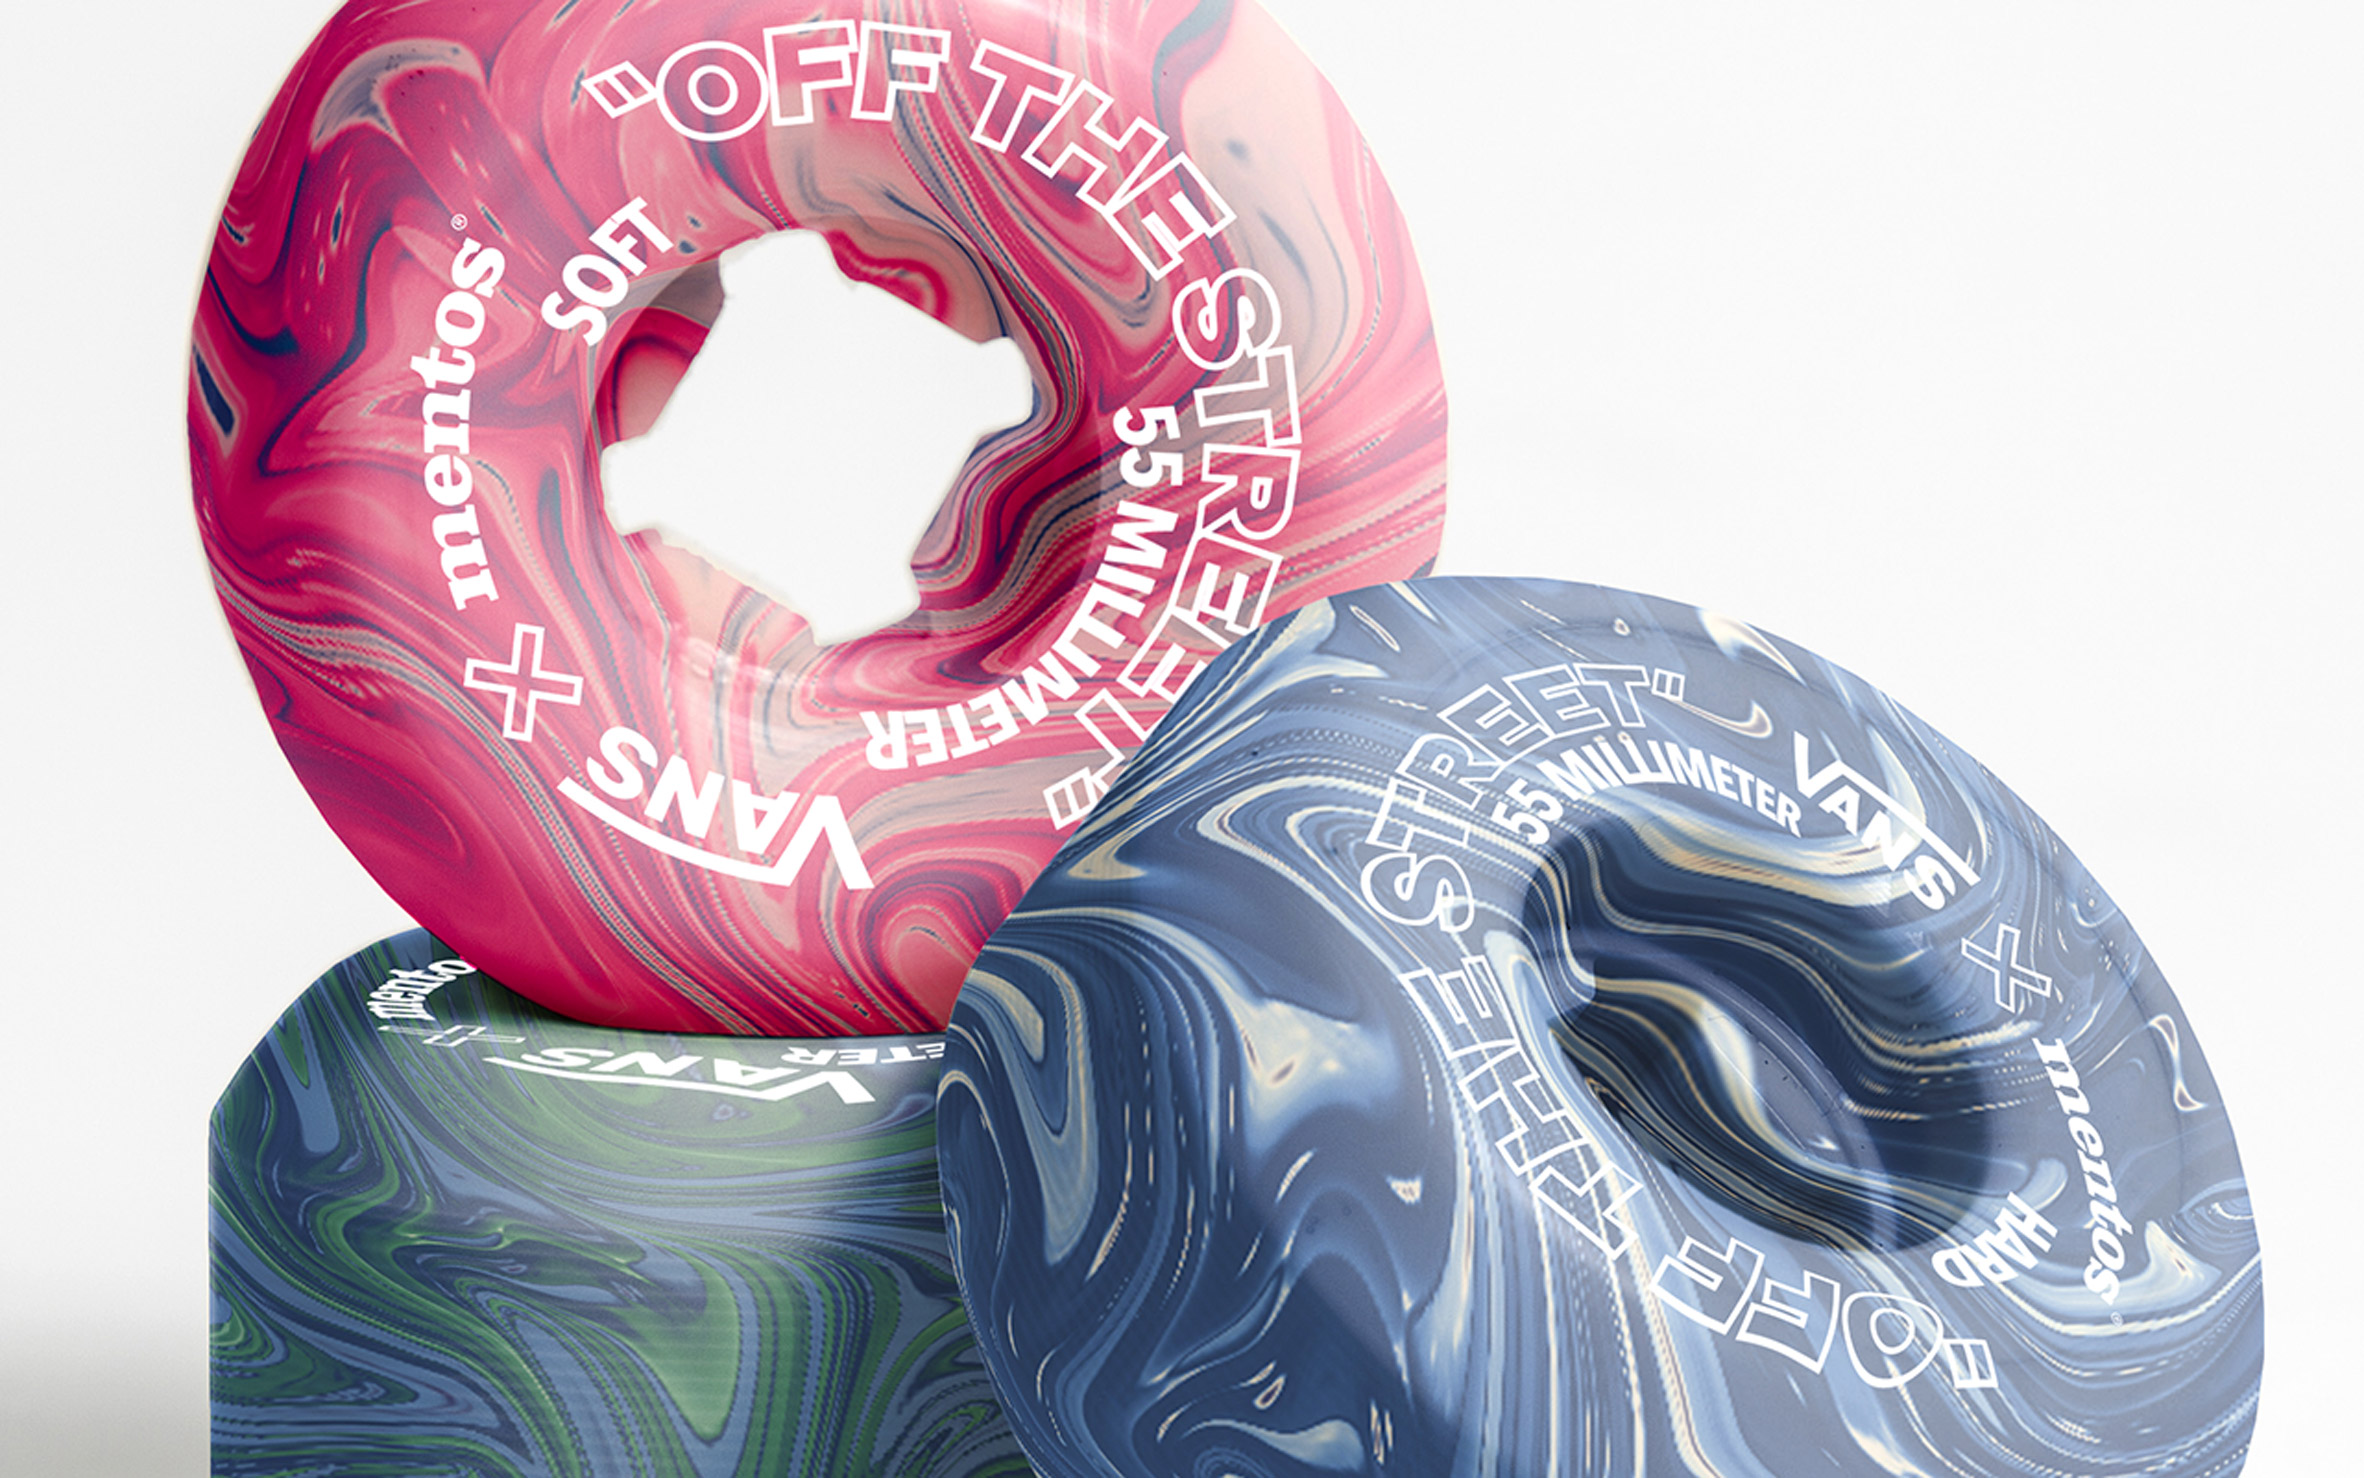 Close-up of chewing gum skateboard wheels by Hugo Maupetit and Vivian Fischer